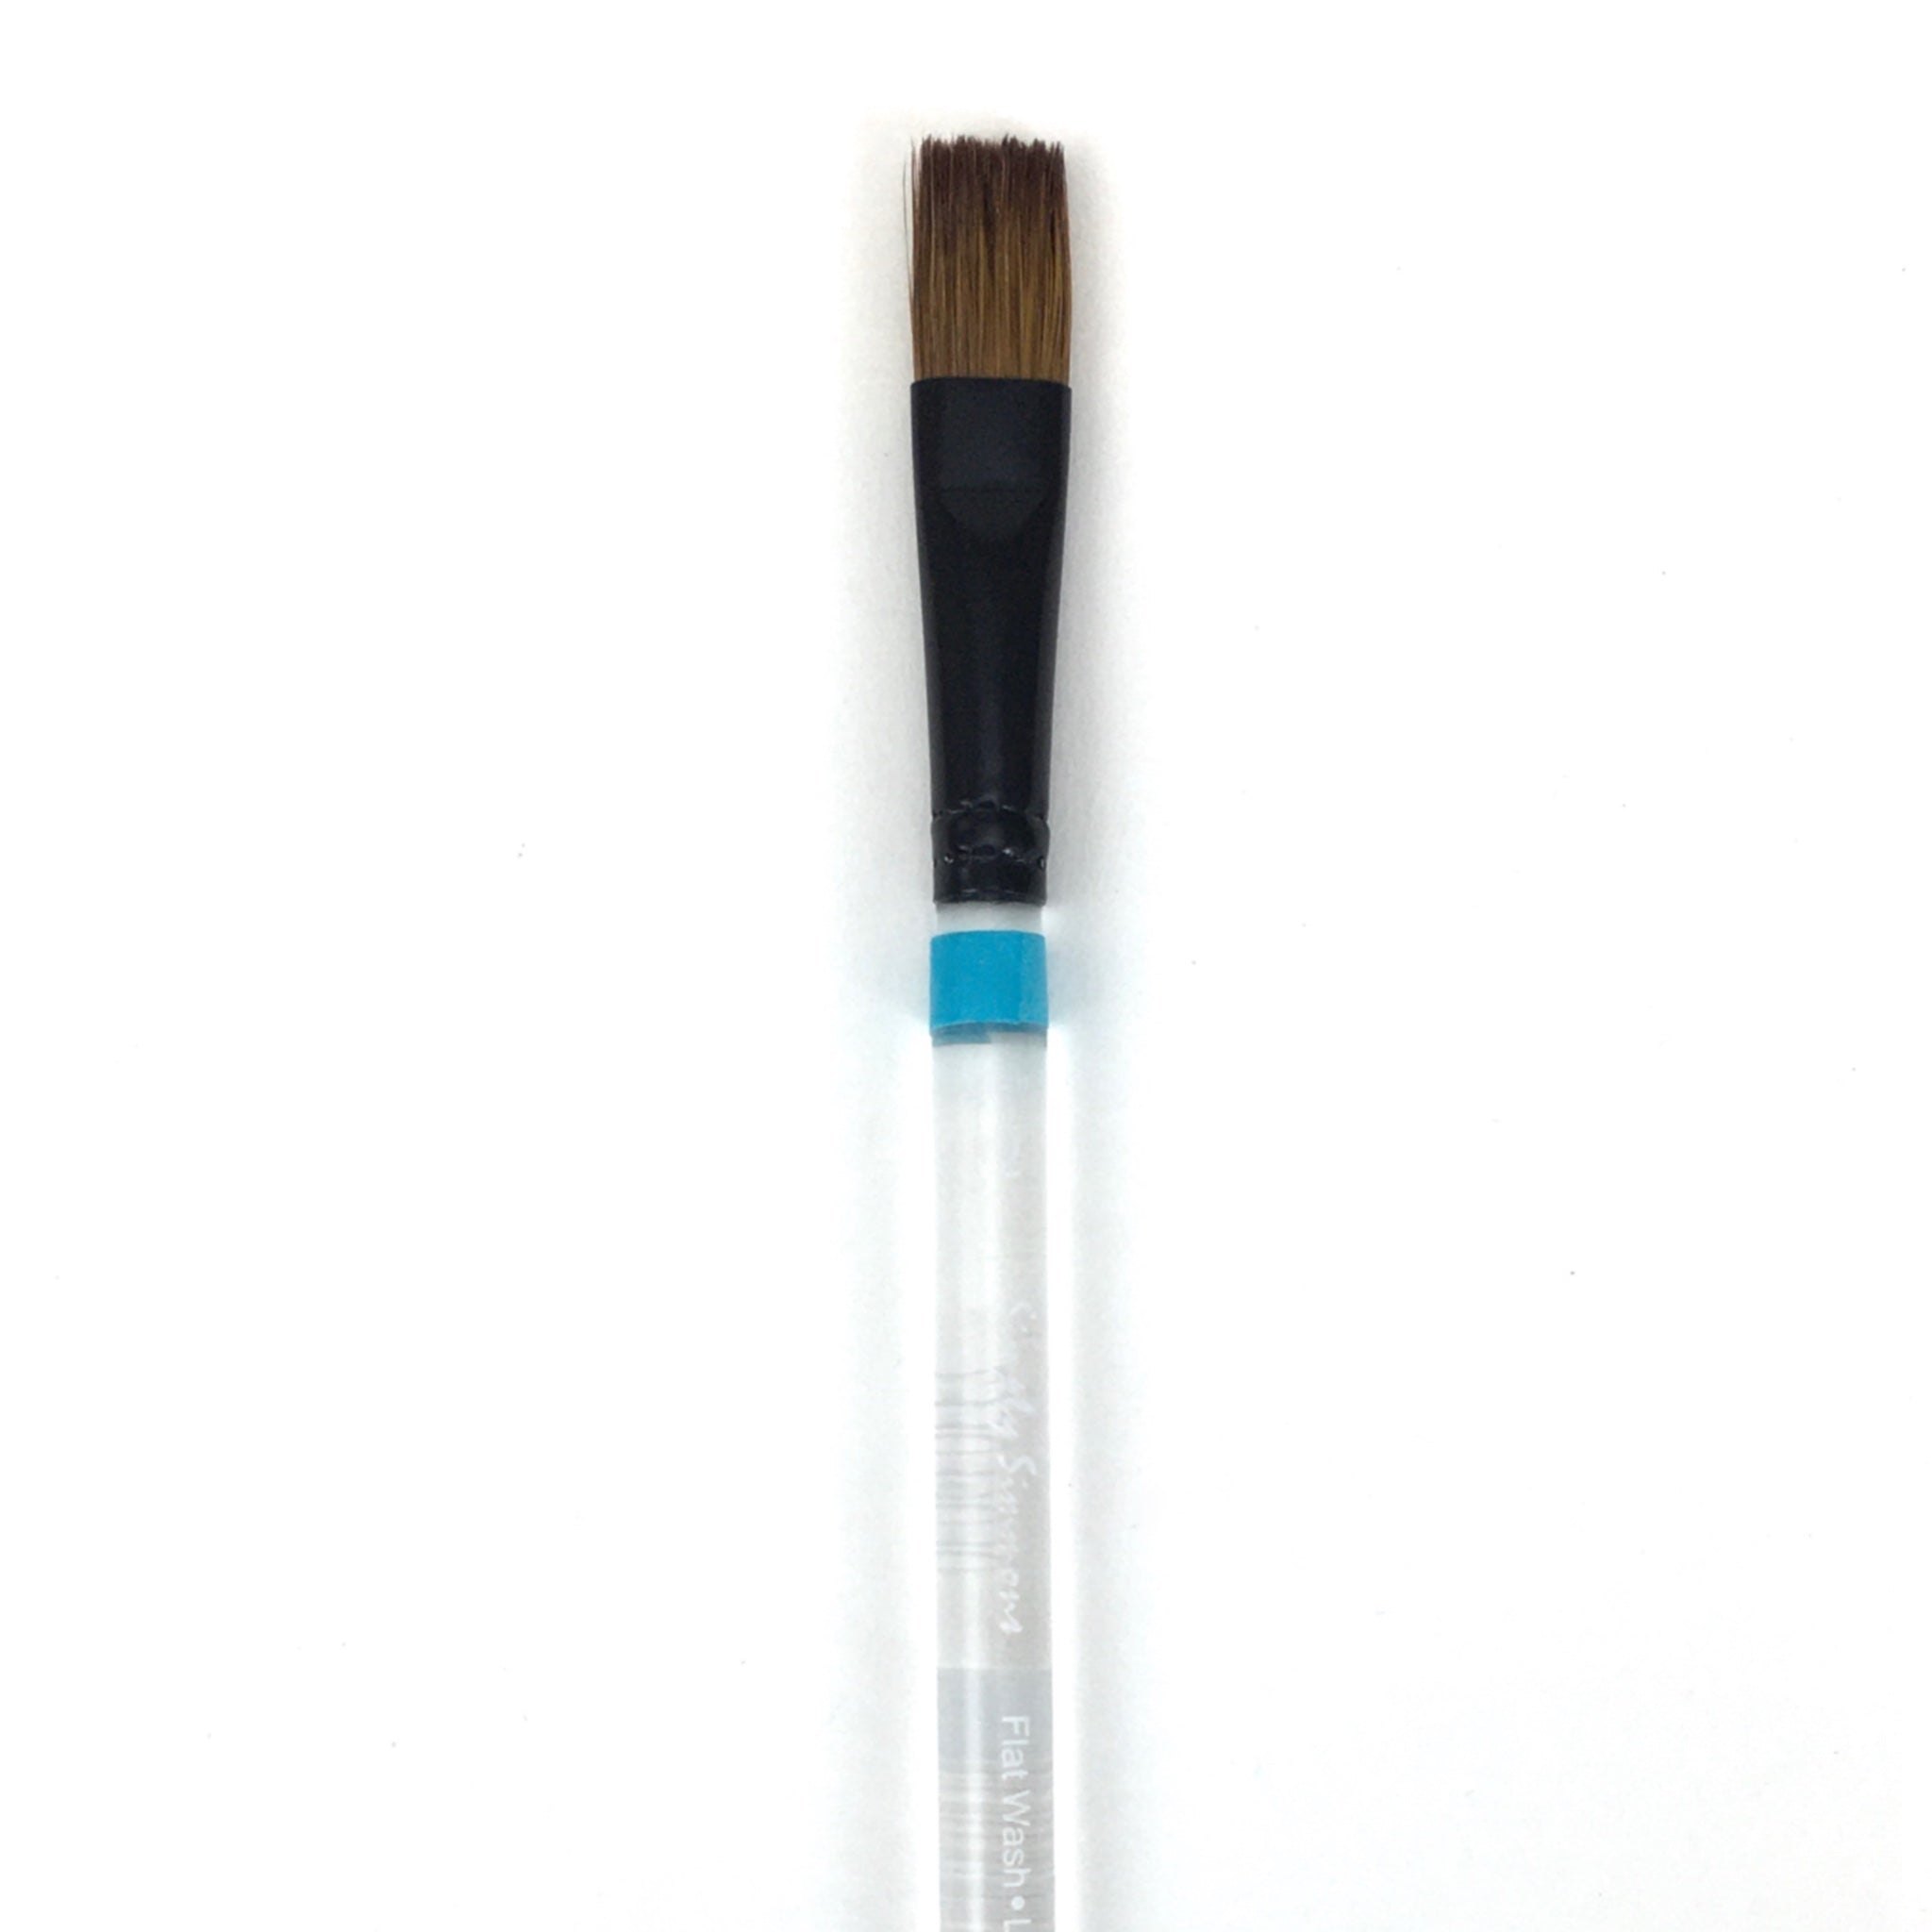 Robert Simmons Simply Simmons Watercolor Brush (Short Handle) - Flat Wash / - 1/2 inches / - natural by Robert Simmons - K. A. Artist Shop